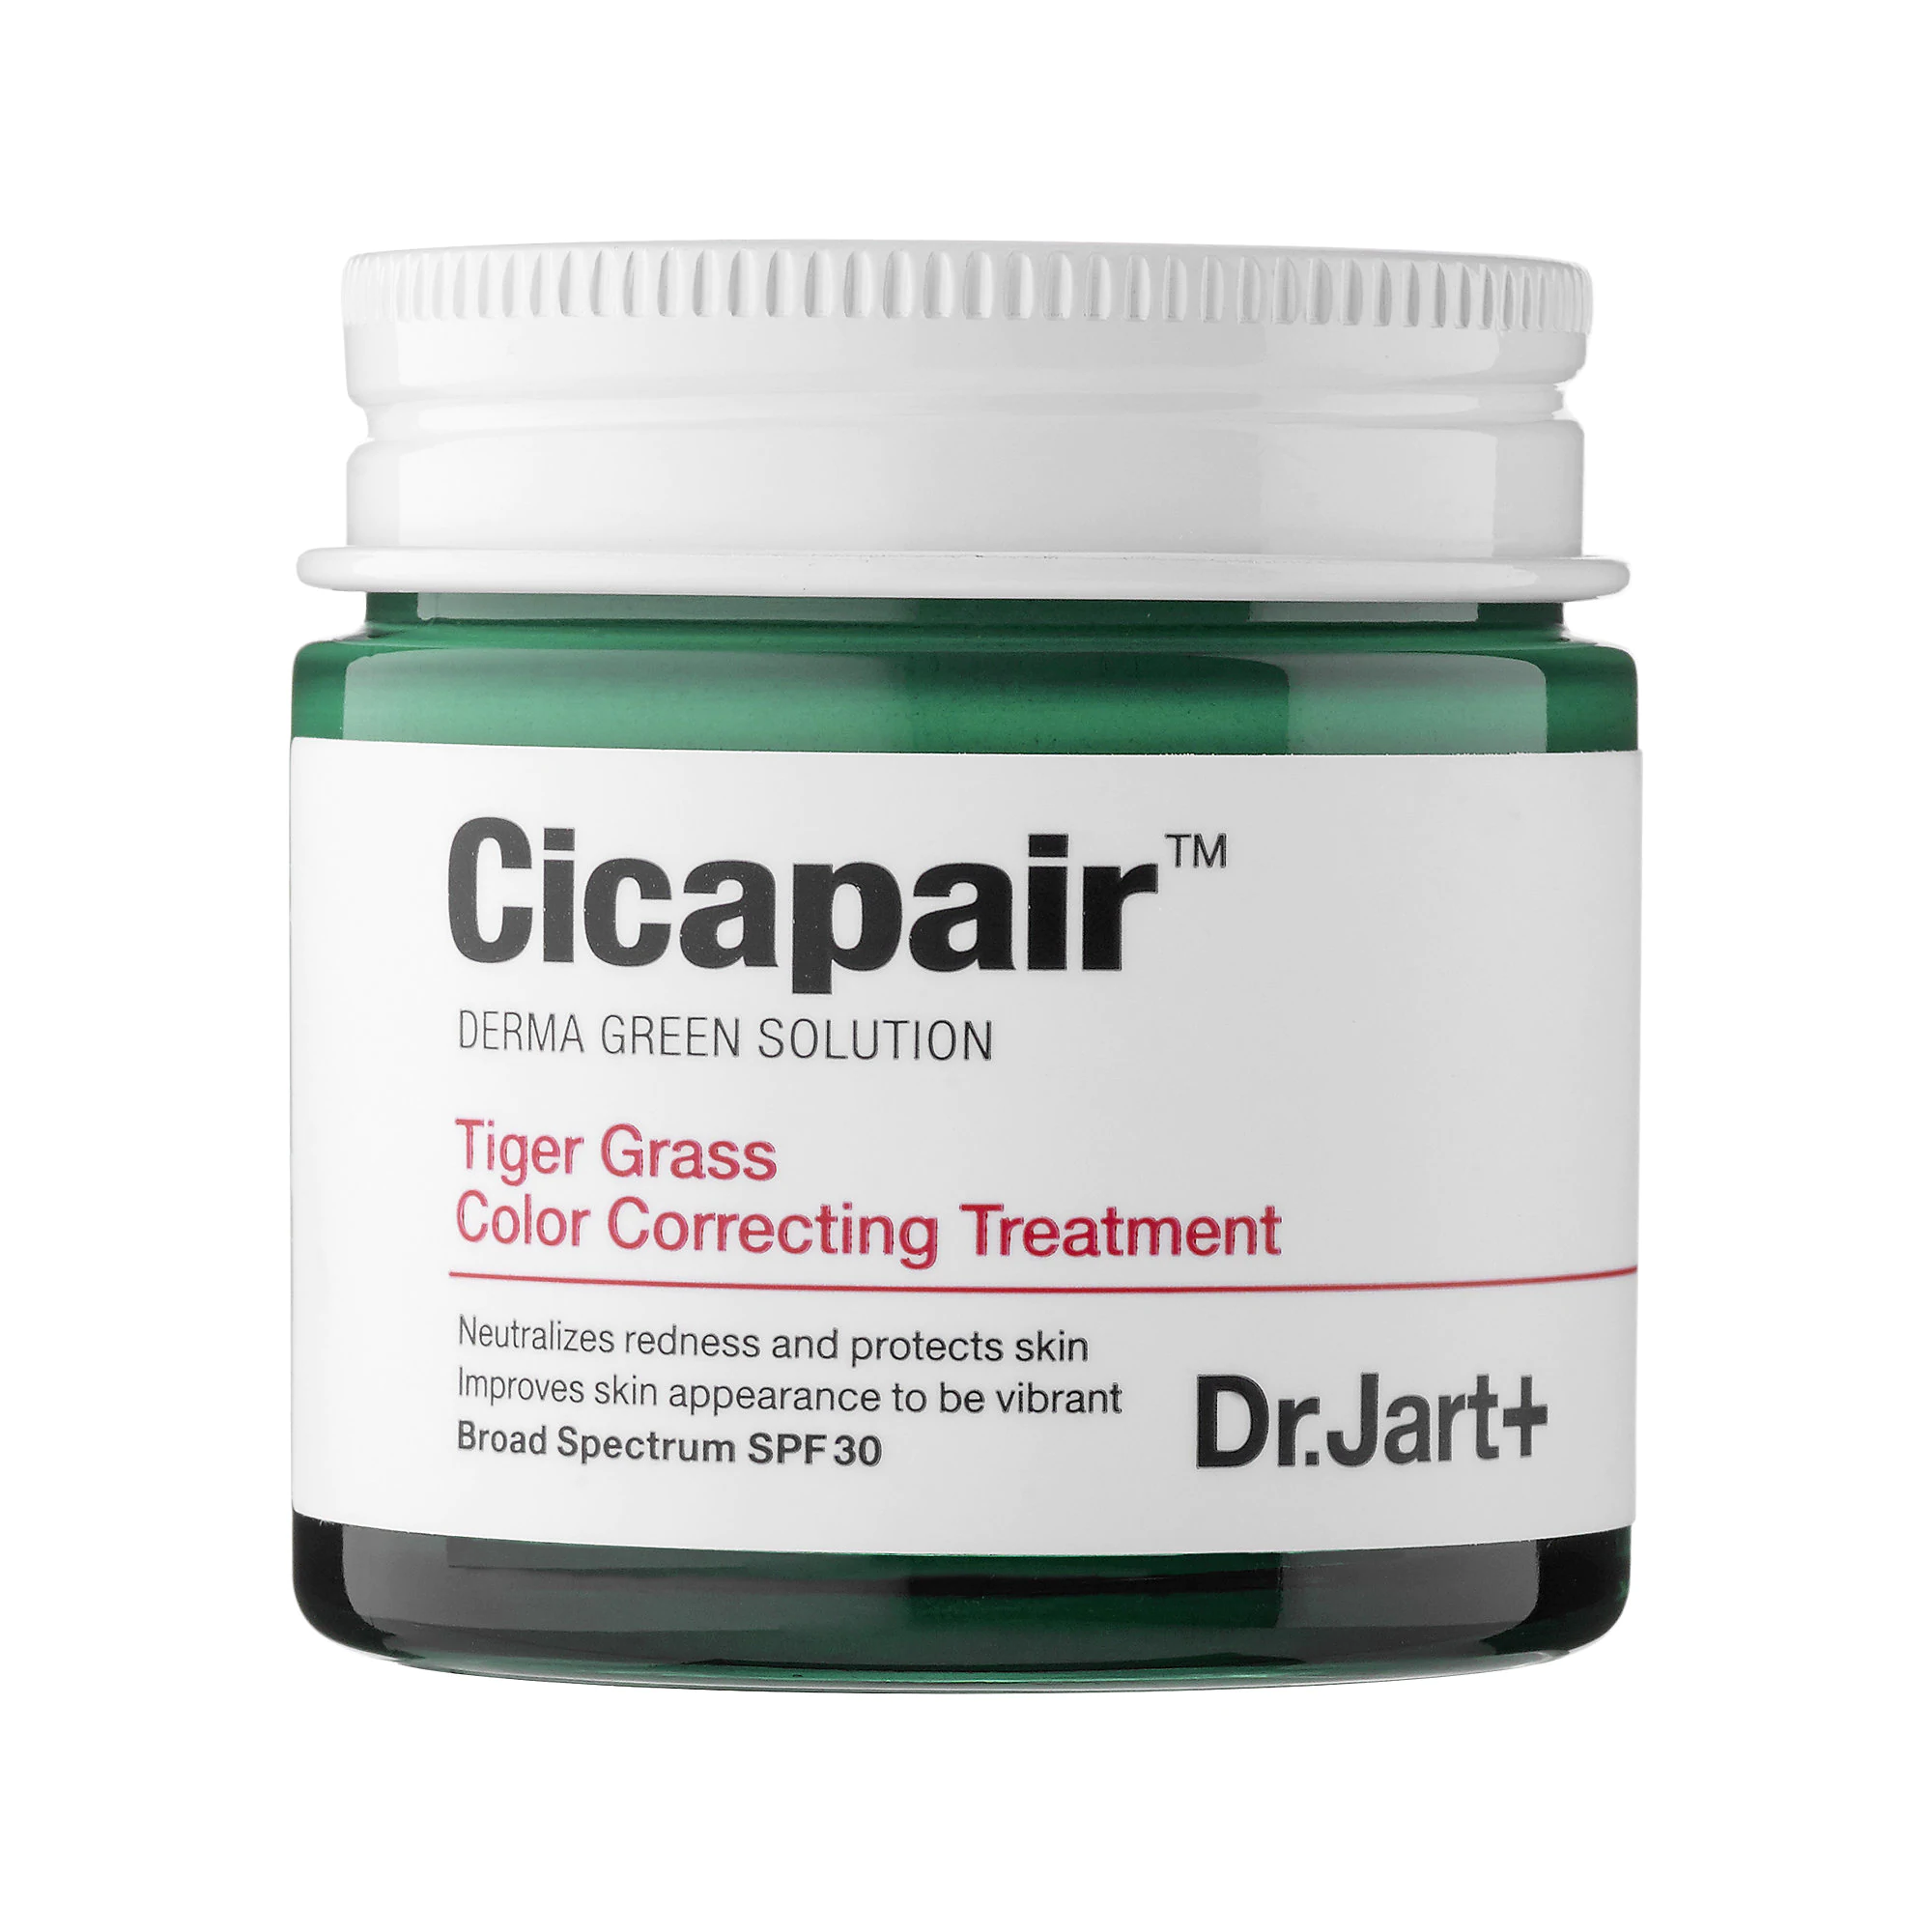 Dr. Jart+-Cicapair™ Tiger Grass Color Correcting Treatment Spf 30